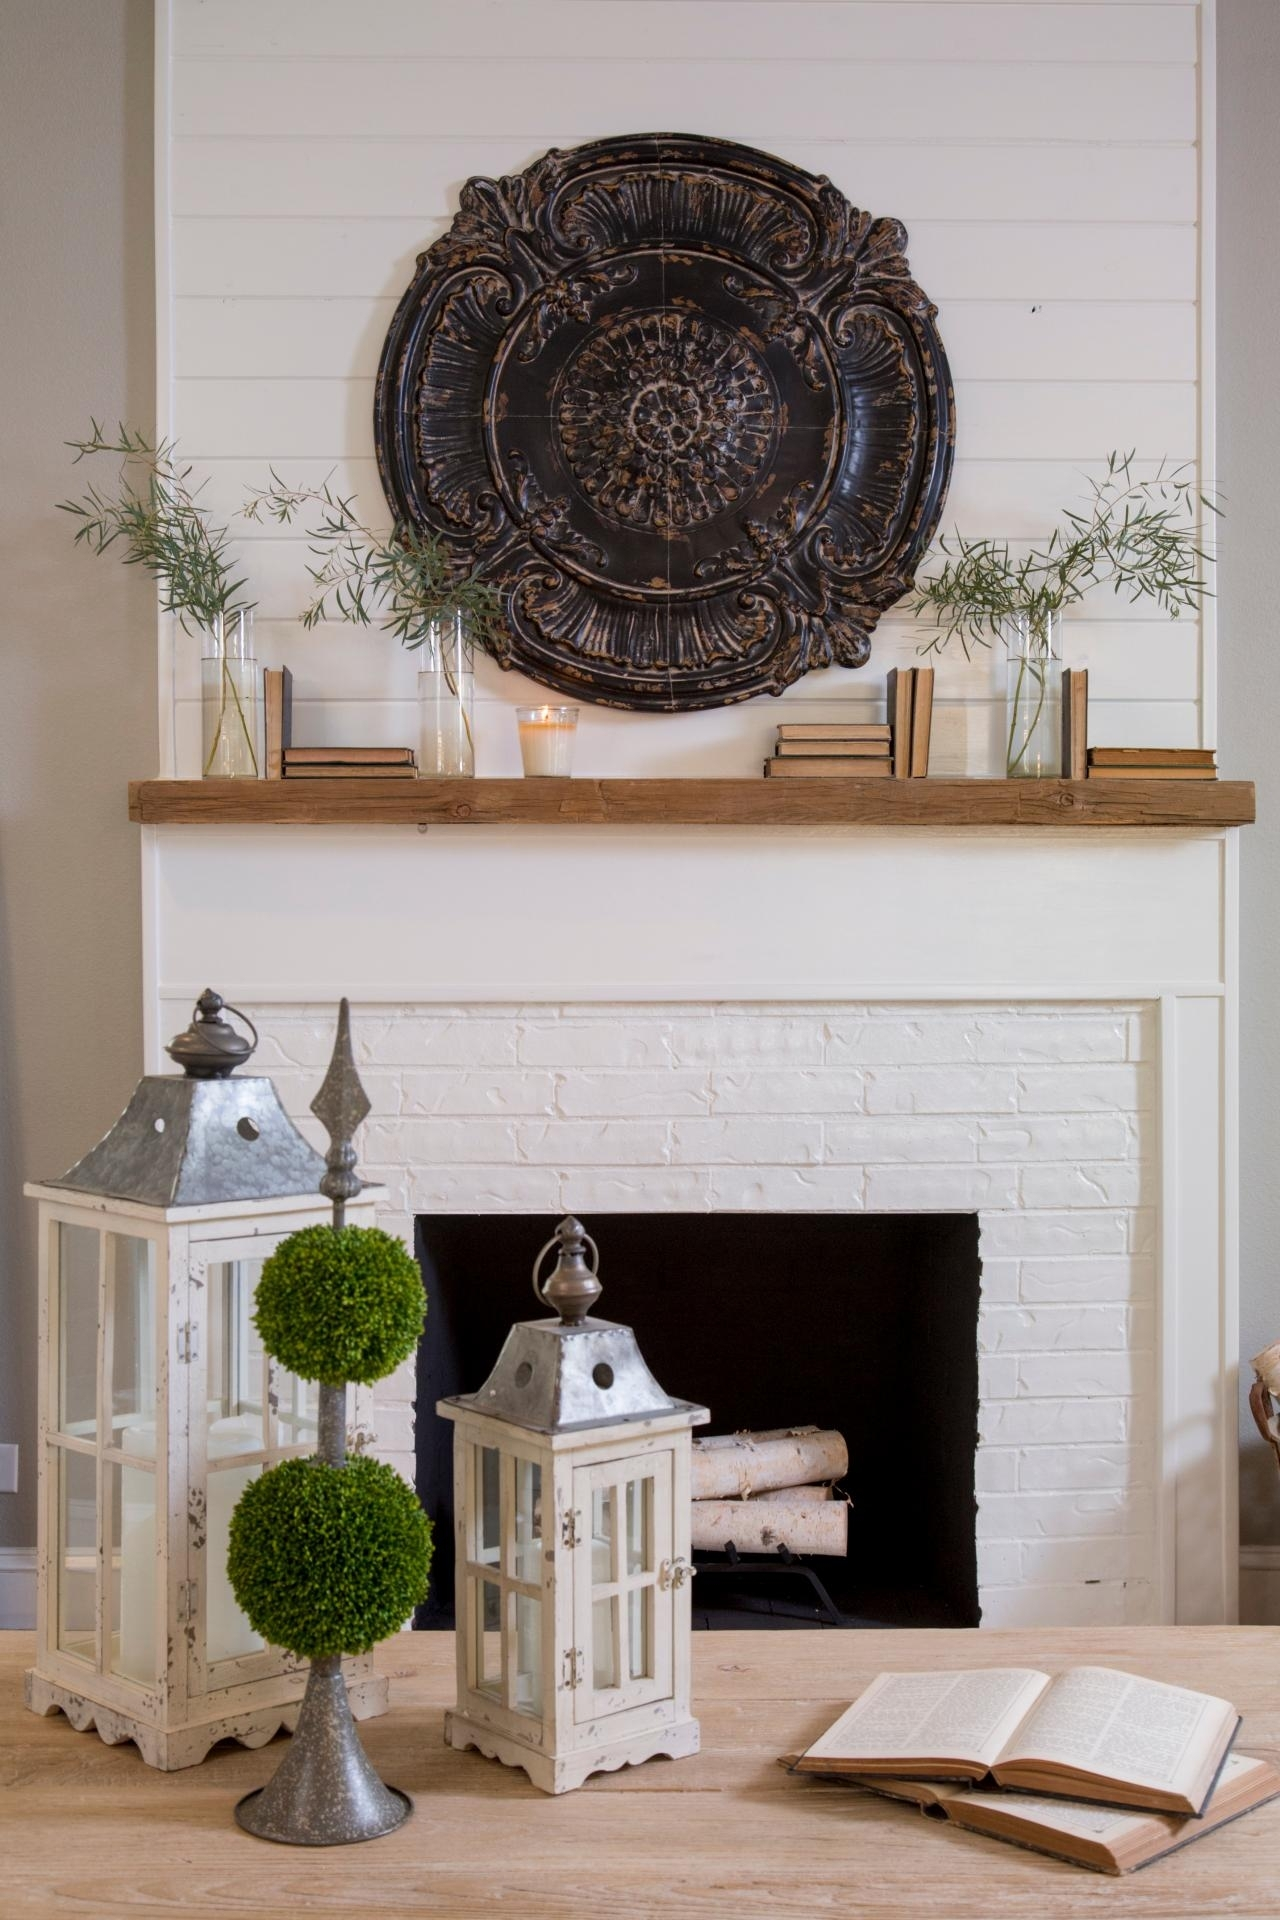 18 Genius Wall Decor Ideas | Hgtv's Decorating & Design Blog | Hgtv Regarding Most Up To Date Wall Accents For Fireplace (View 12 of 15)